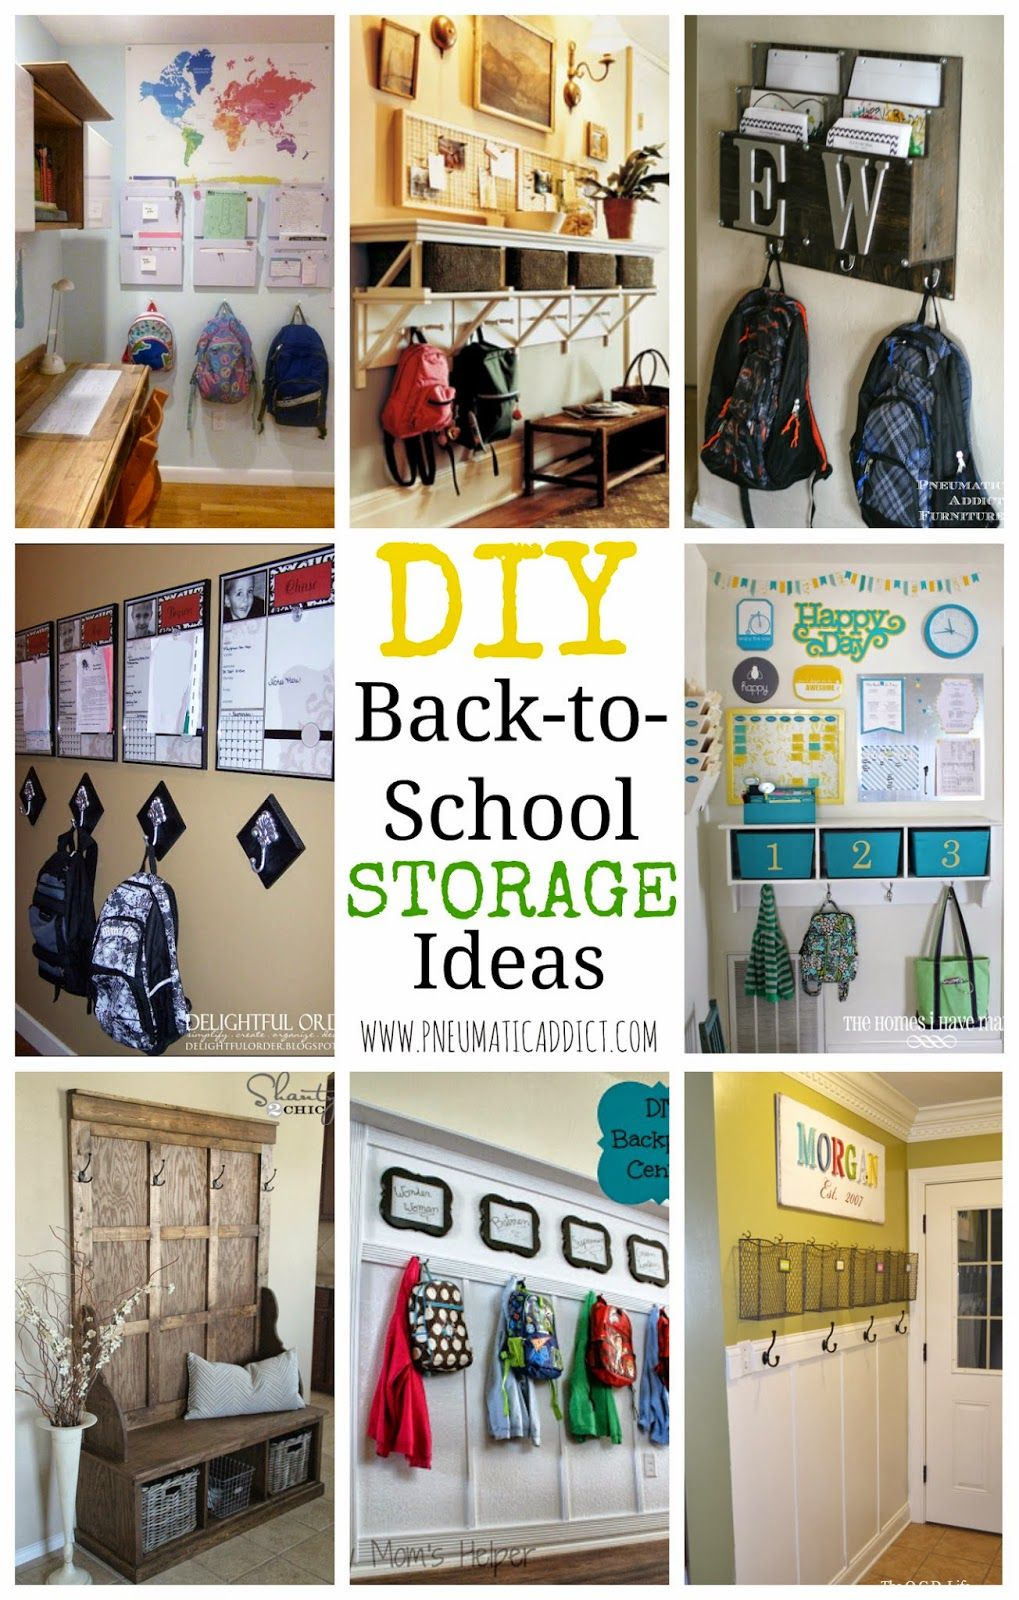 DIY Back to School Storage Ideas wwwpneumaticaddictcom DIY Back to School